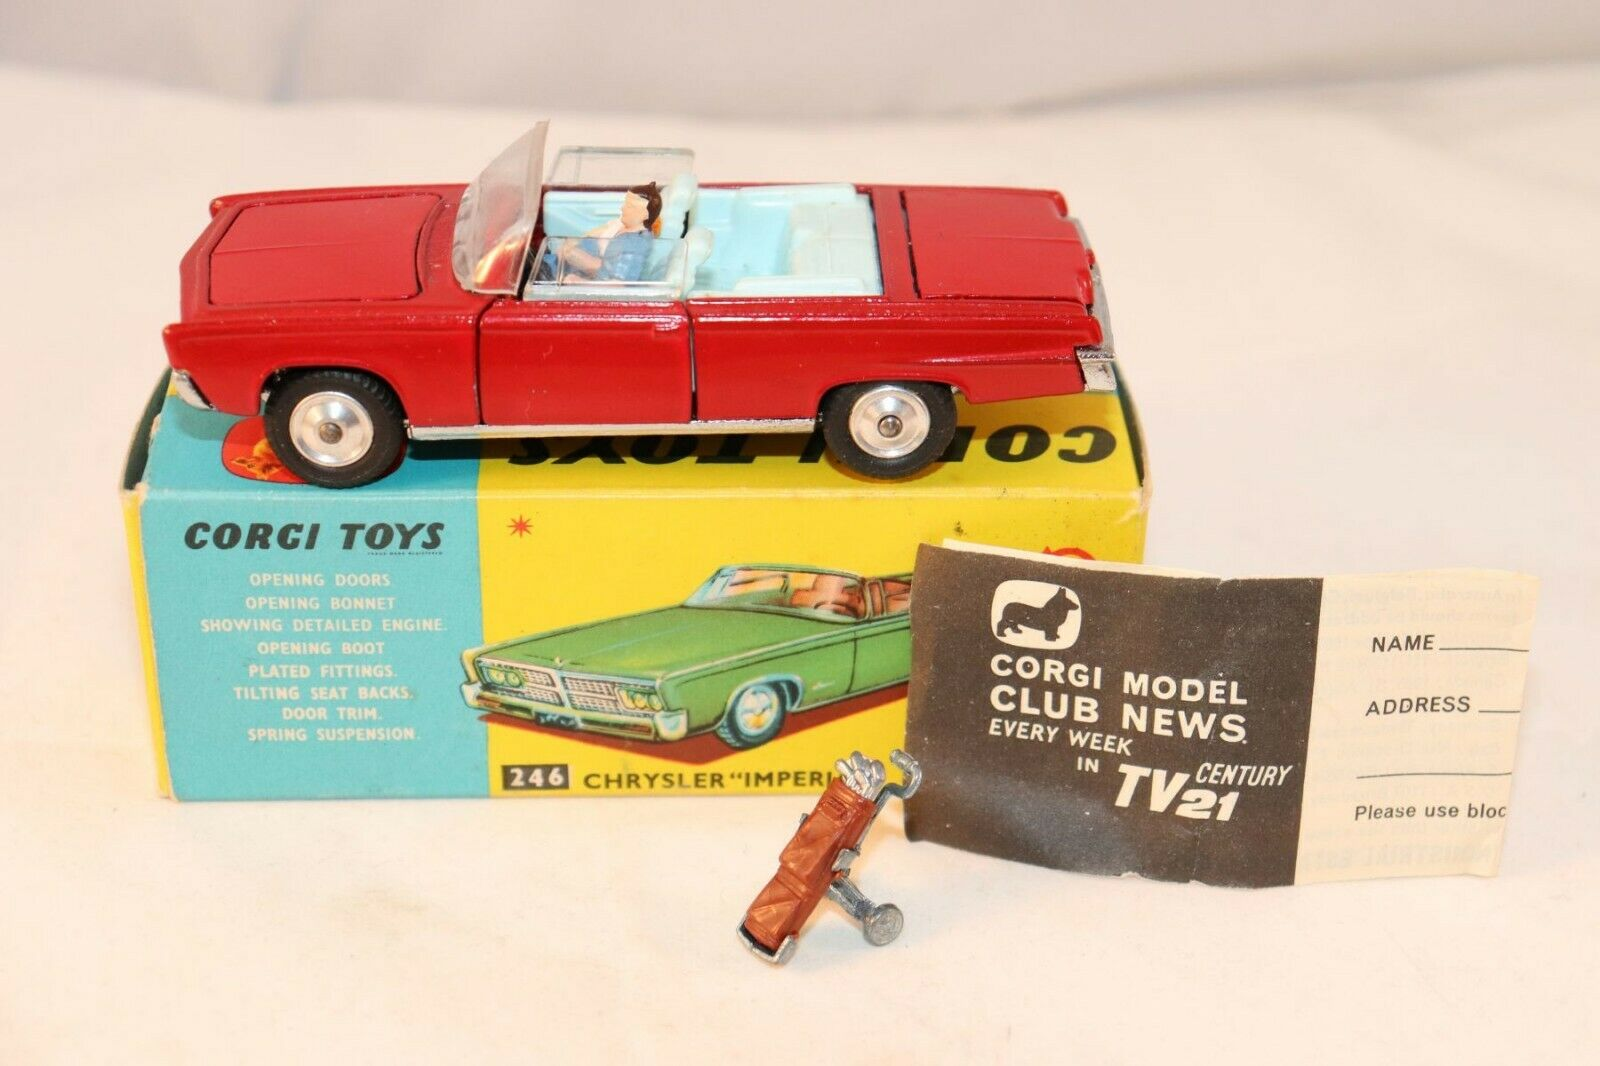 Corgi Toys 246 Chrysler  Imperial   mint in box with SPUN HUBS very scarce model